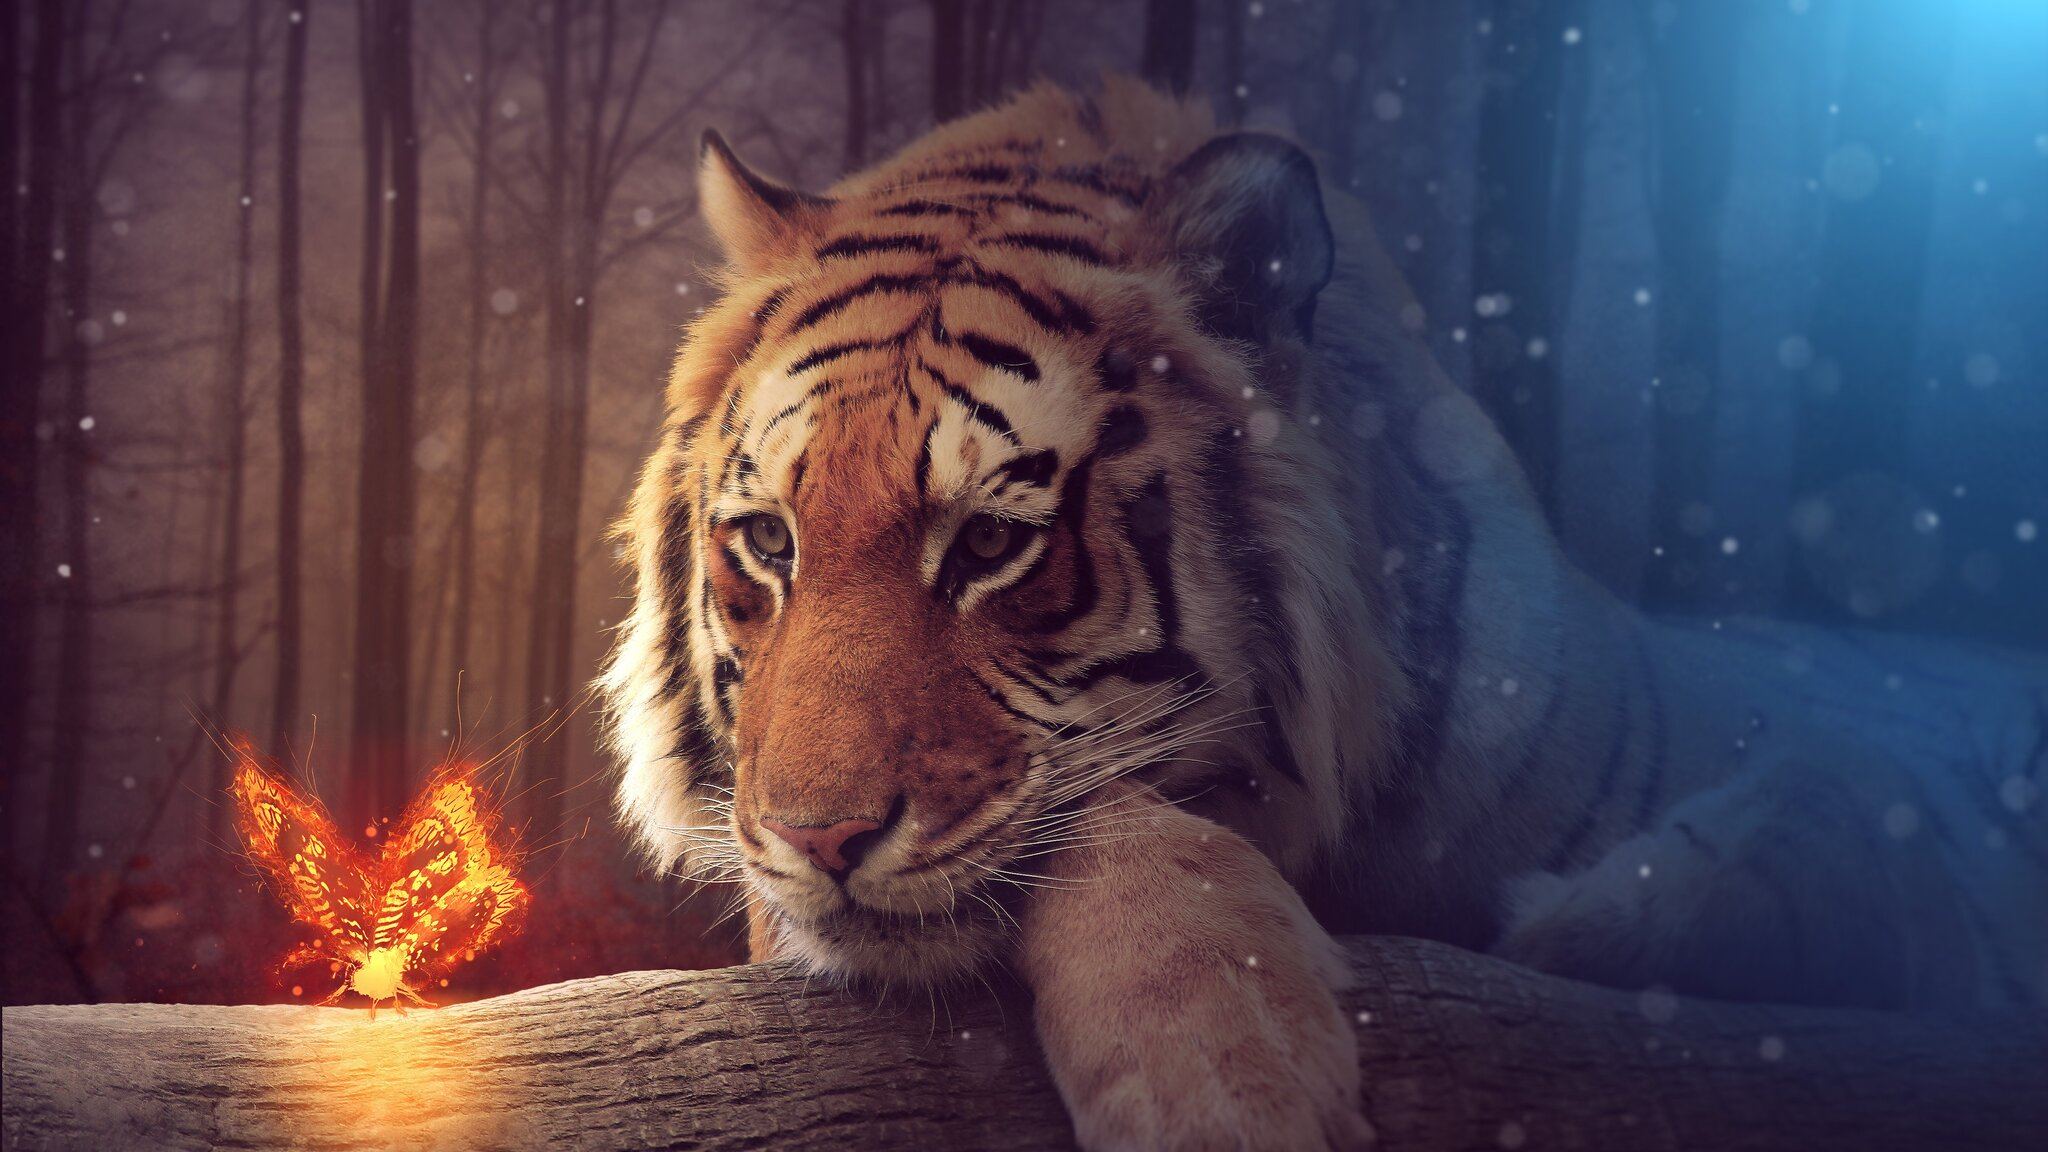 2048x1152 Tiger Dreamy Art 2048x1152 Resolution Hd 4k Wallpapers